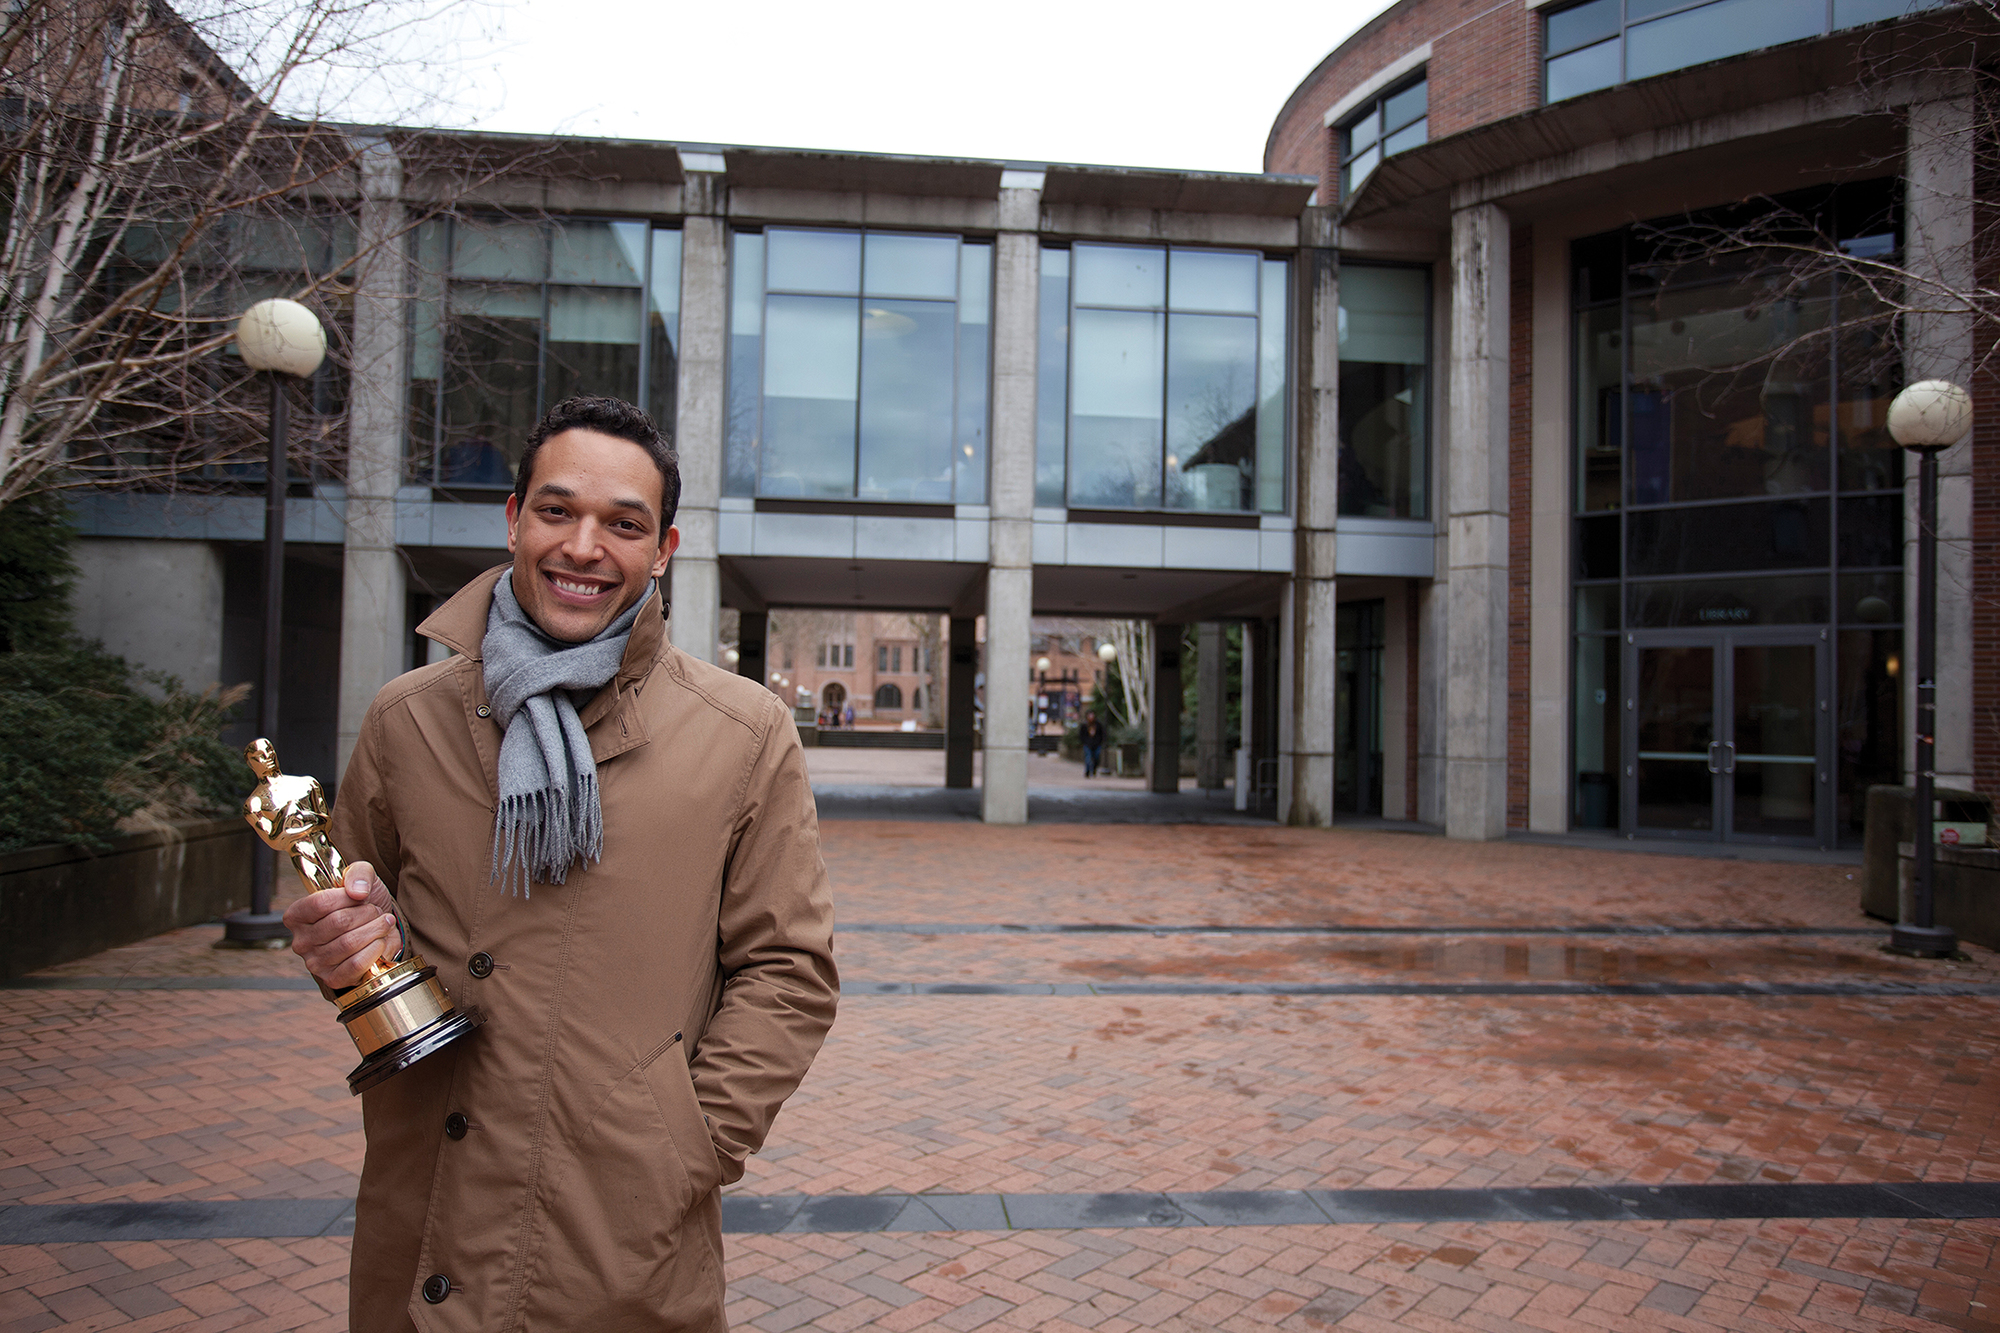 Alumni TJ Martin poses with their Academy Award in front of the Western Washington University library. Tj is smiling, with one hand gripping the award close to their chest and the other hand tucked into their thick winter coat.